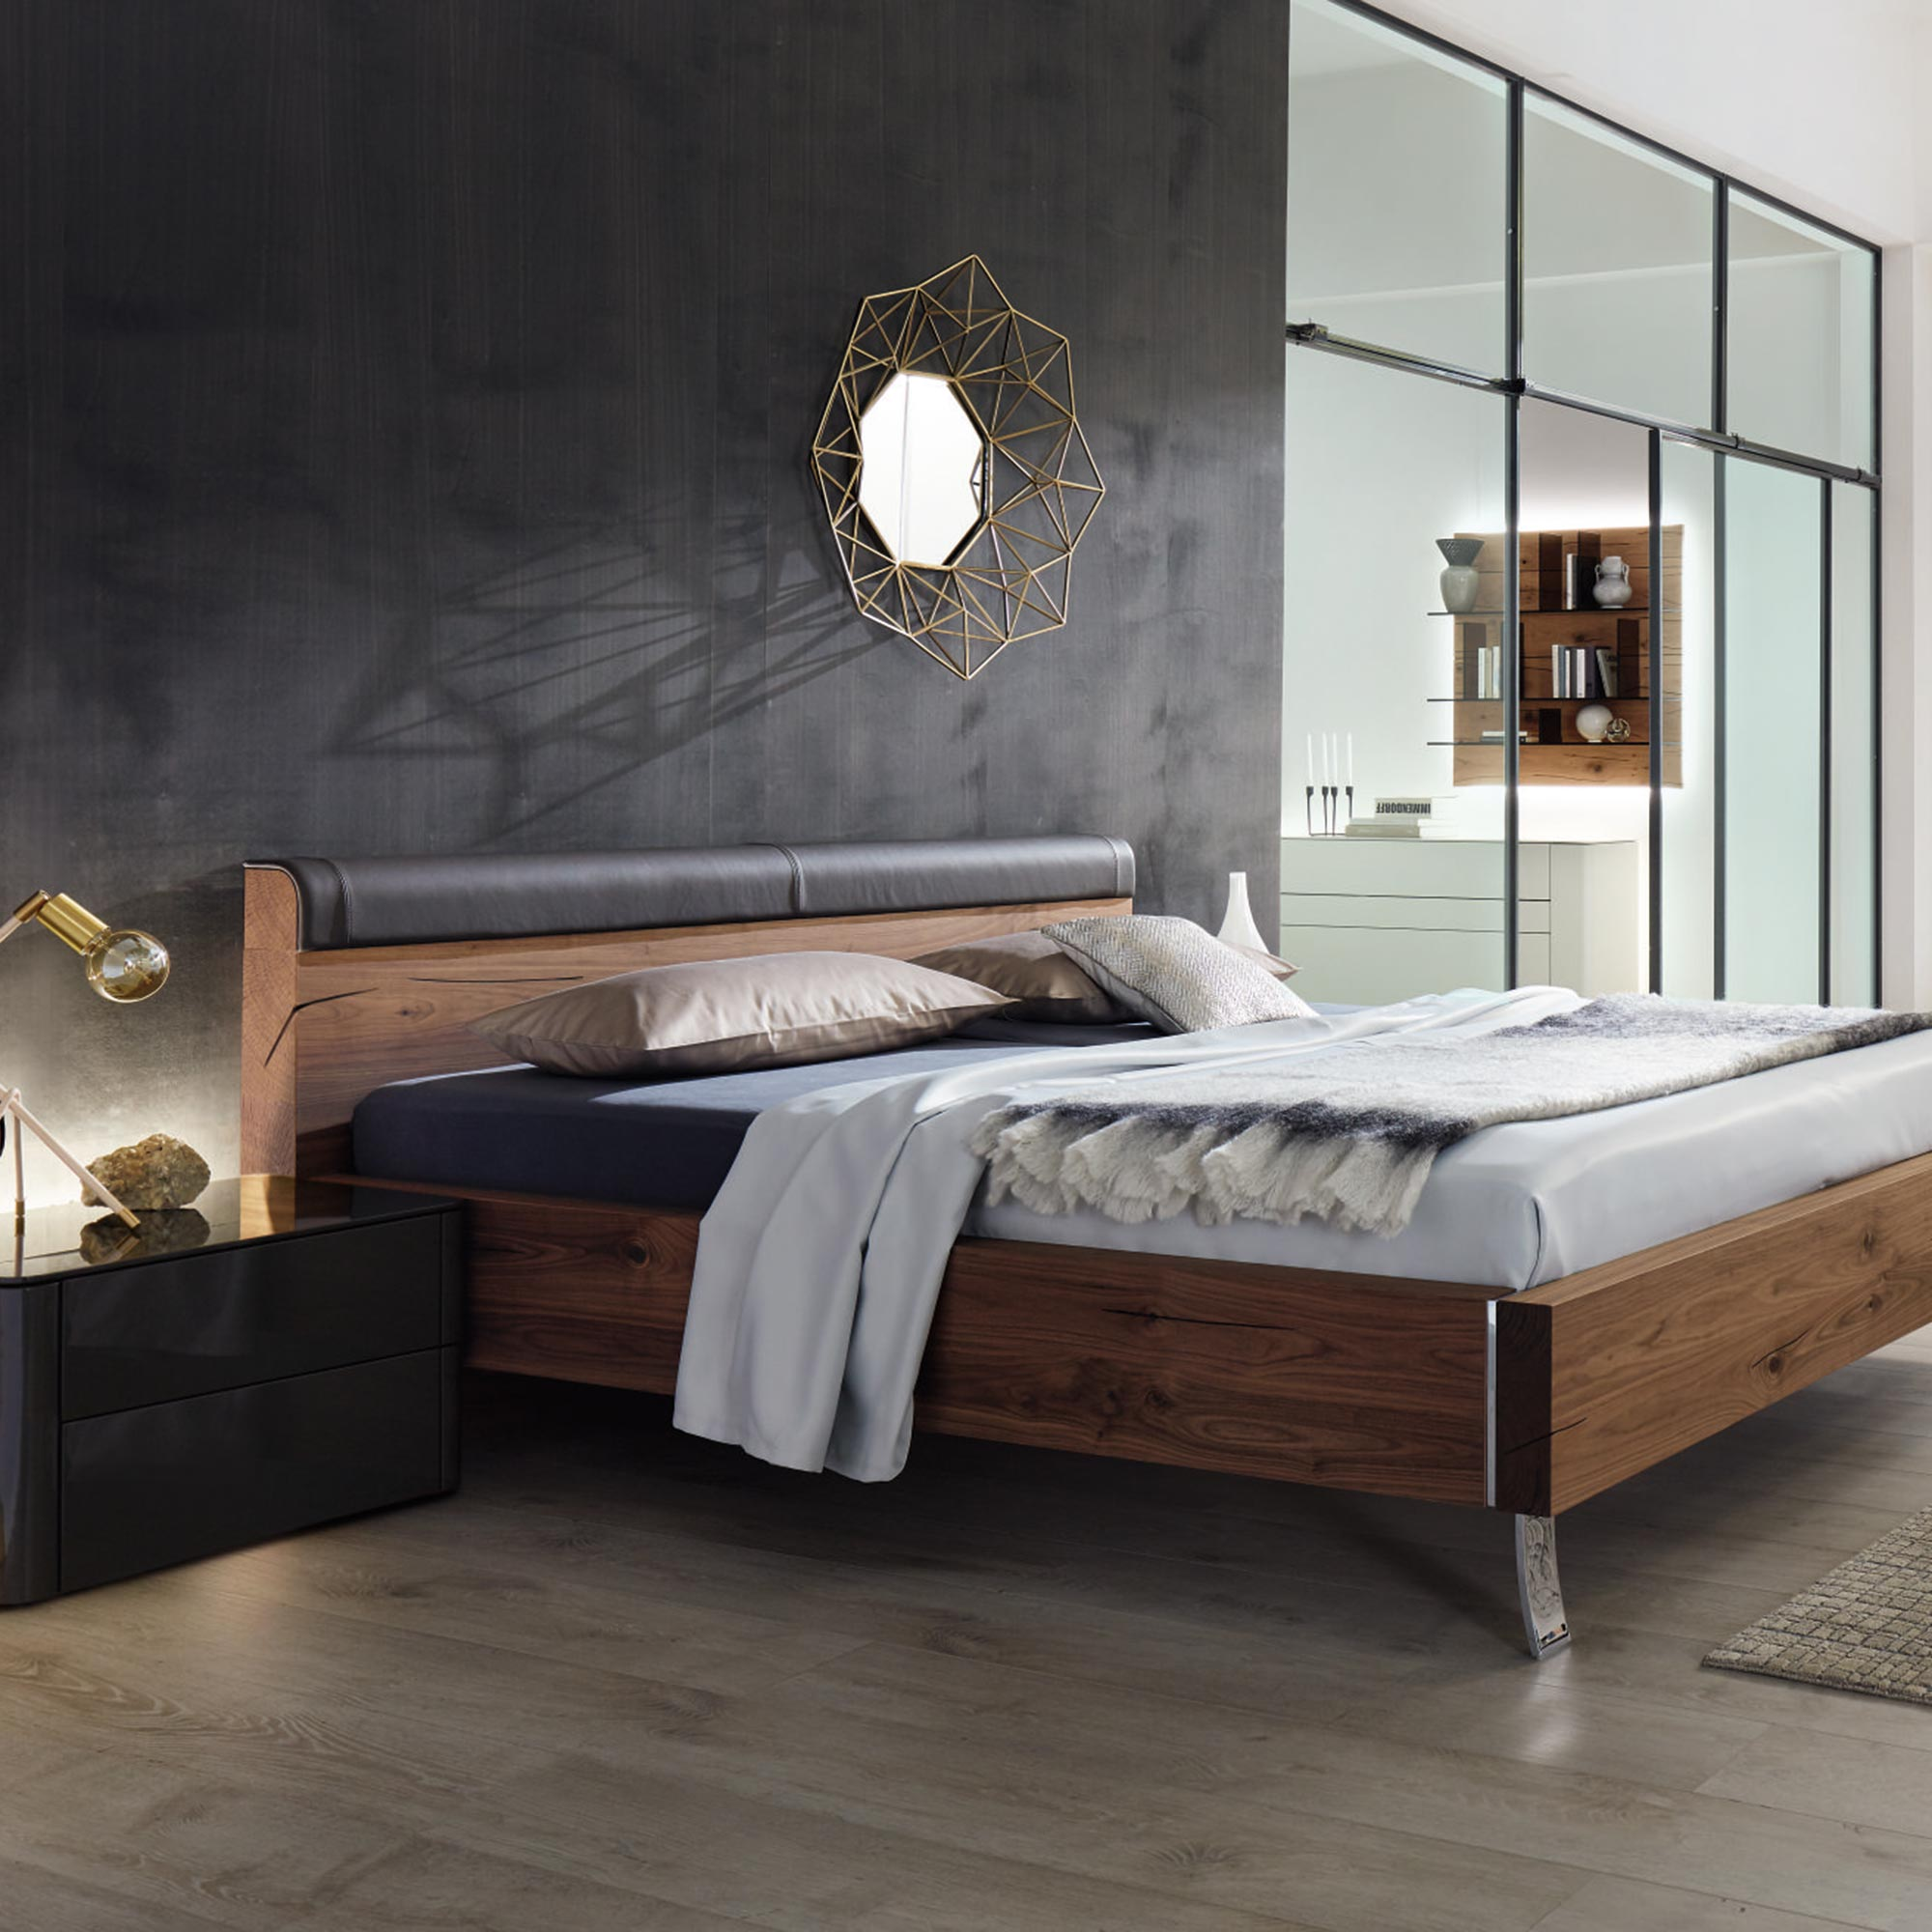 h lsta gentis schlafzimmer nussbaum schwarz m bel b r ag. Black Bedroom Furniture Sets. Home Design Ideas